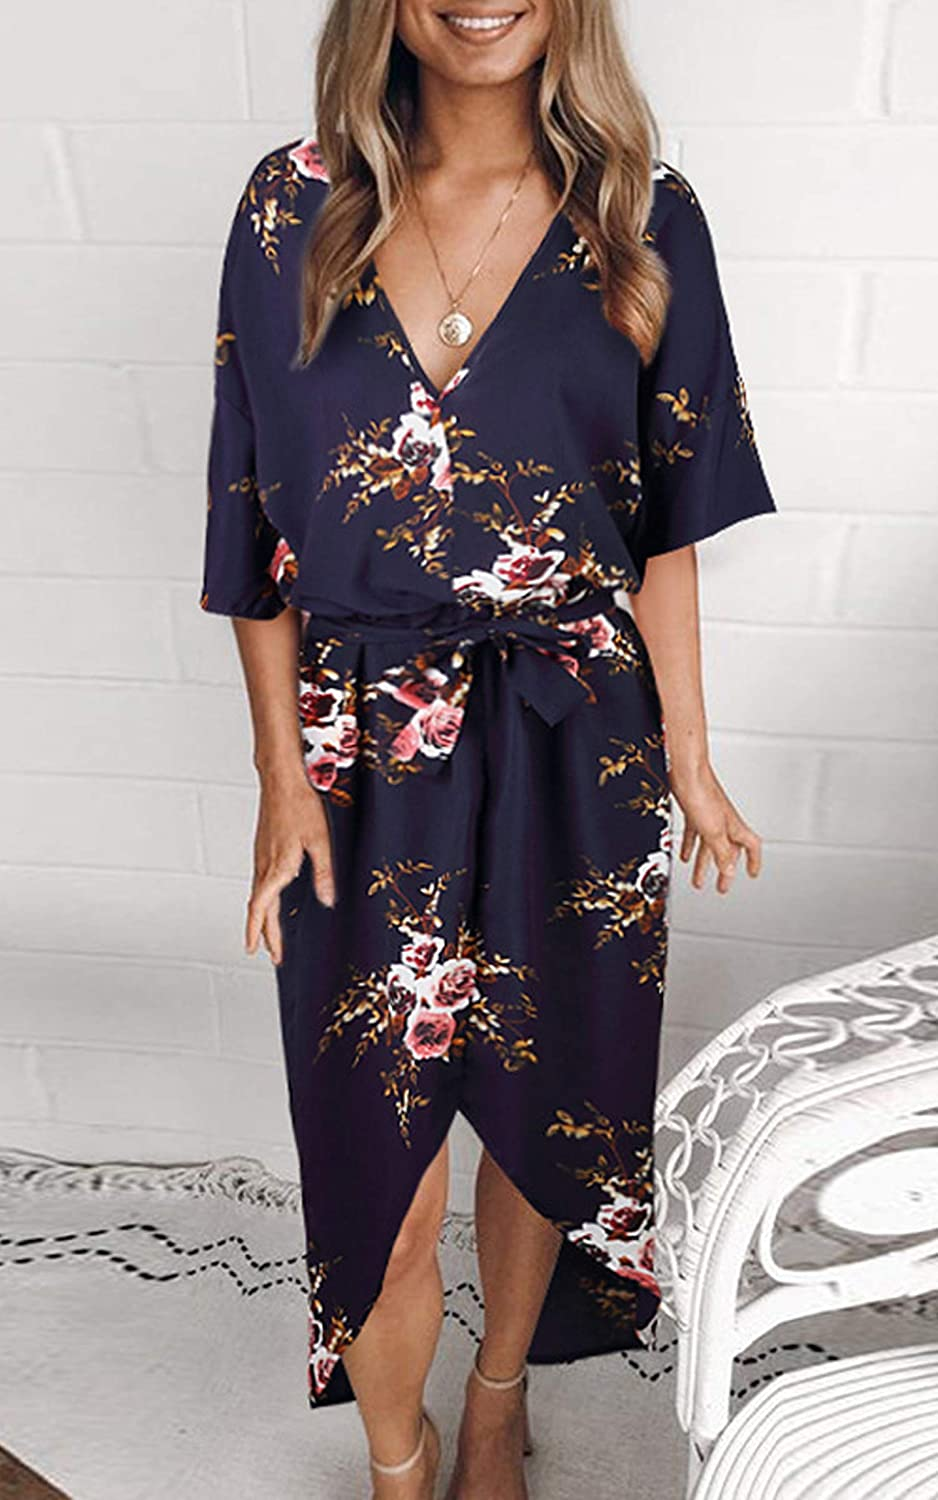 f966f422a6ae ECOWISH Womens Boho Dresses Floral Print V Neck Short Sleeve Split Casual  Dress with Belt at Amazon Women's Clothing store: